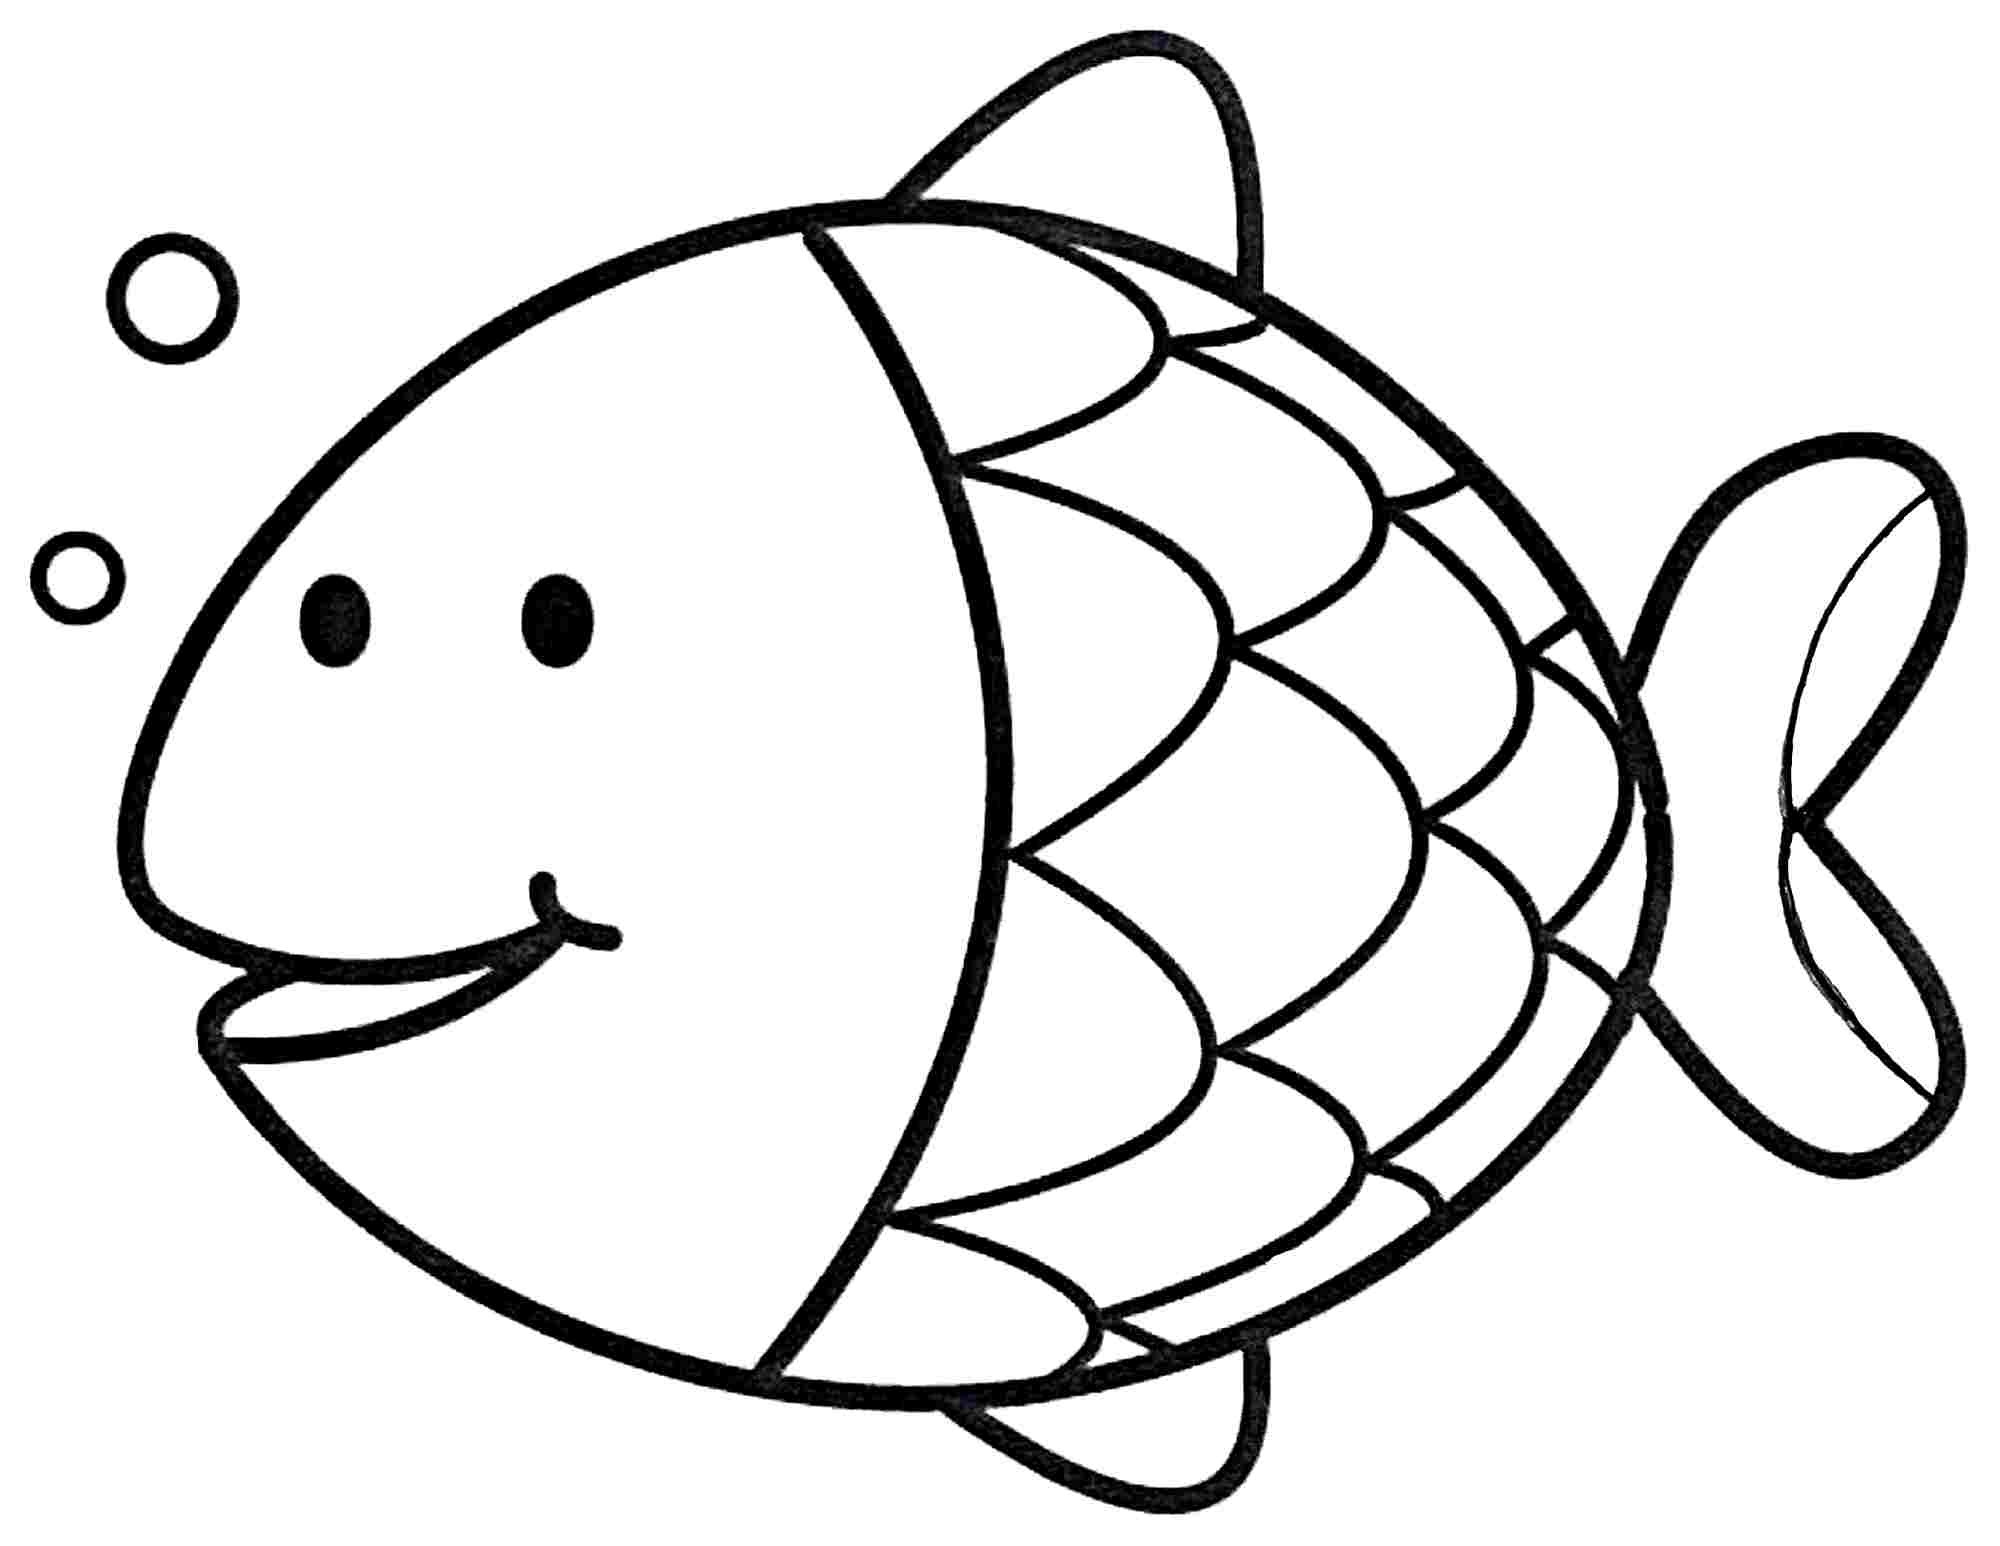 Fish Coloring Pages For Preschool At Getcolorings